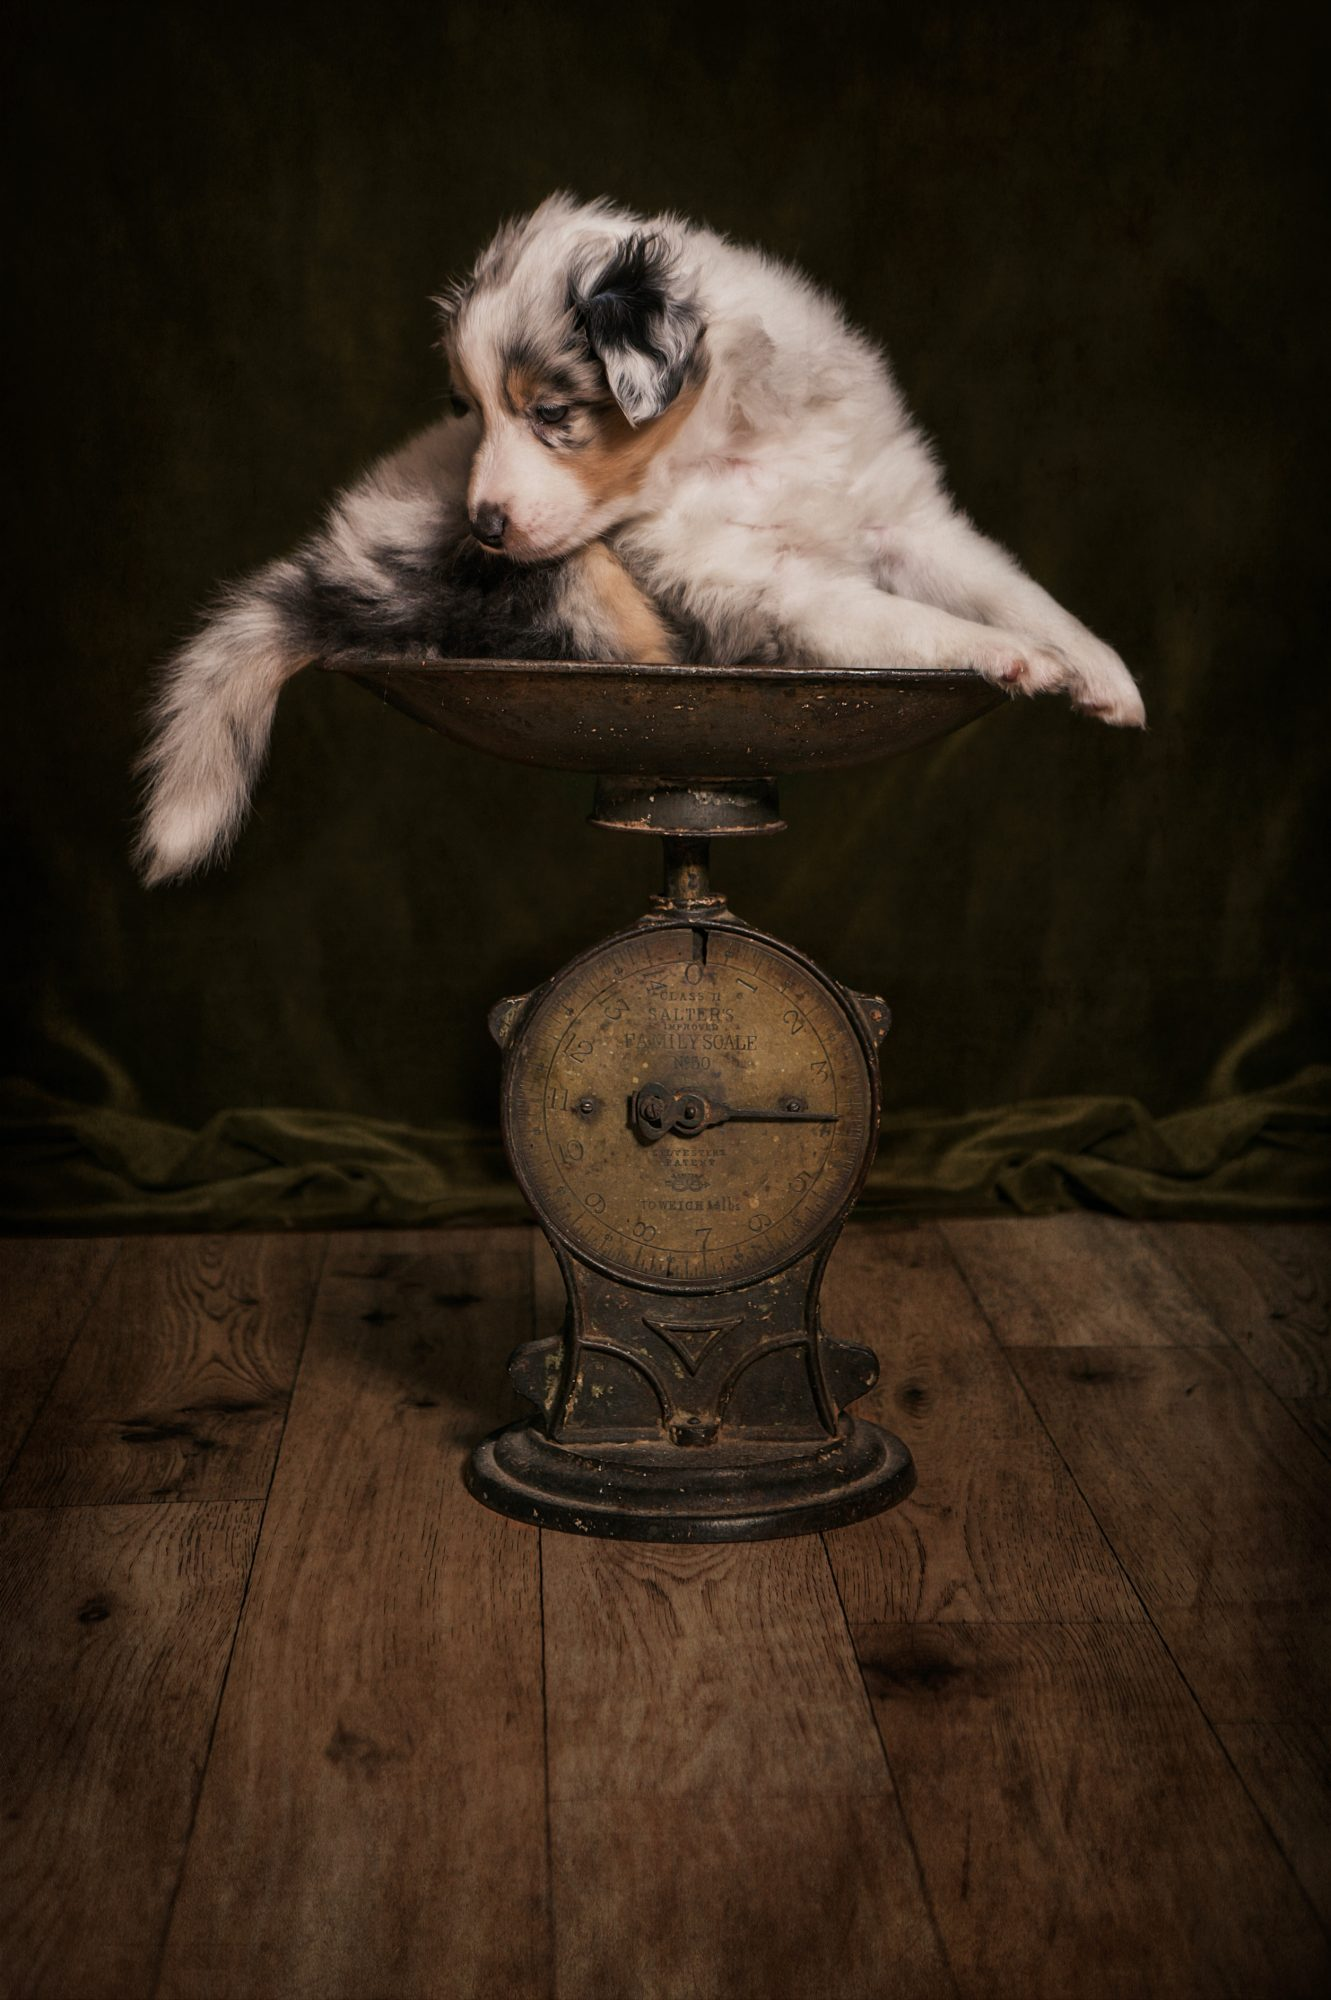 Specialist Pet Photography Watch Me Grow session with Sheltie Puppy in our Studio. United Kingdom. Captured by award winning pet photographer, Detheo Photography.